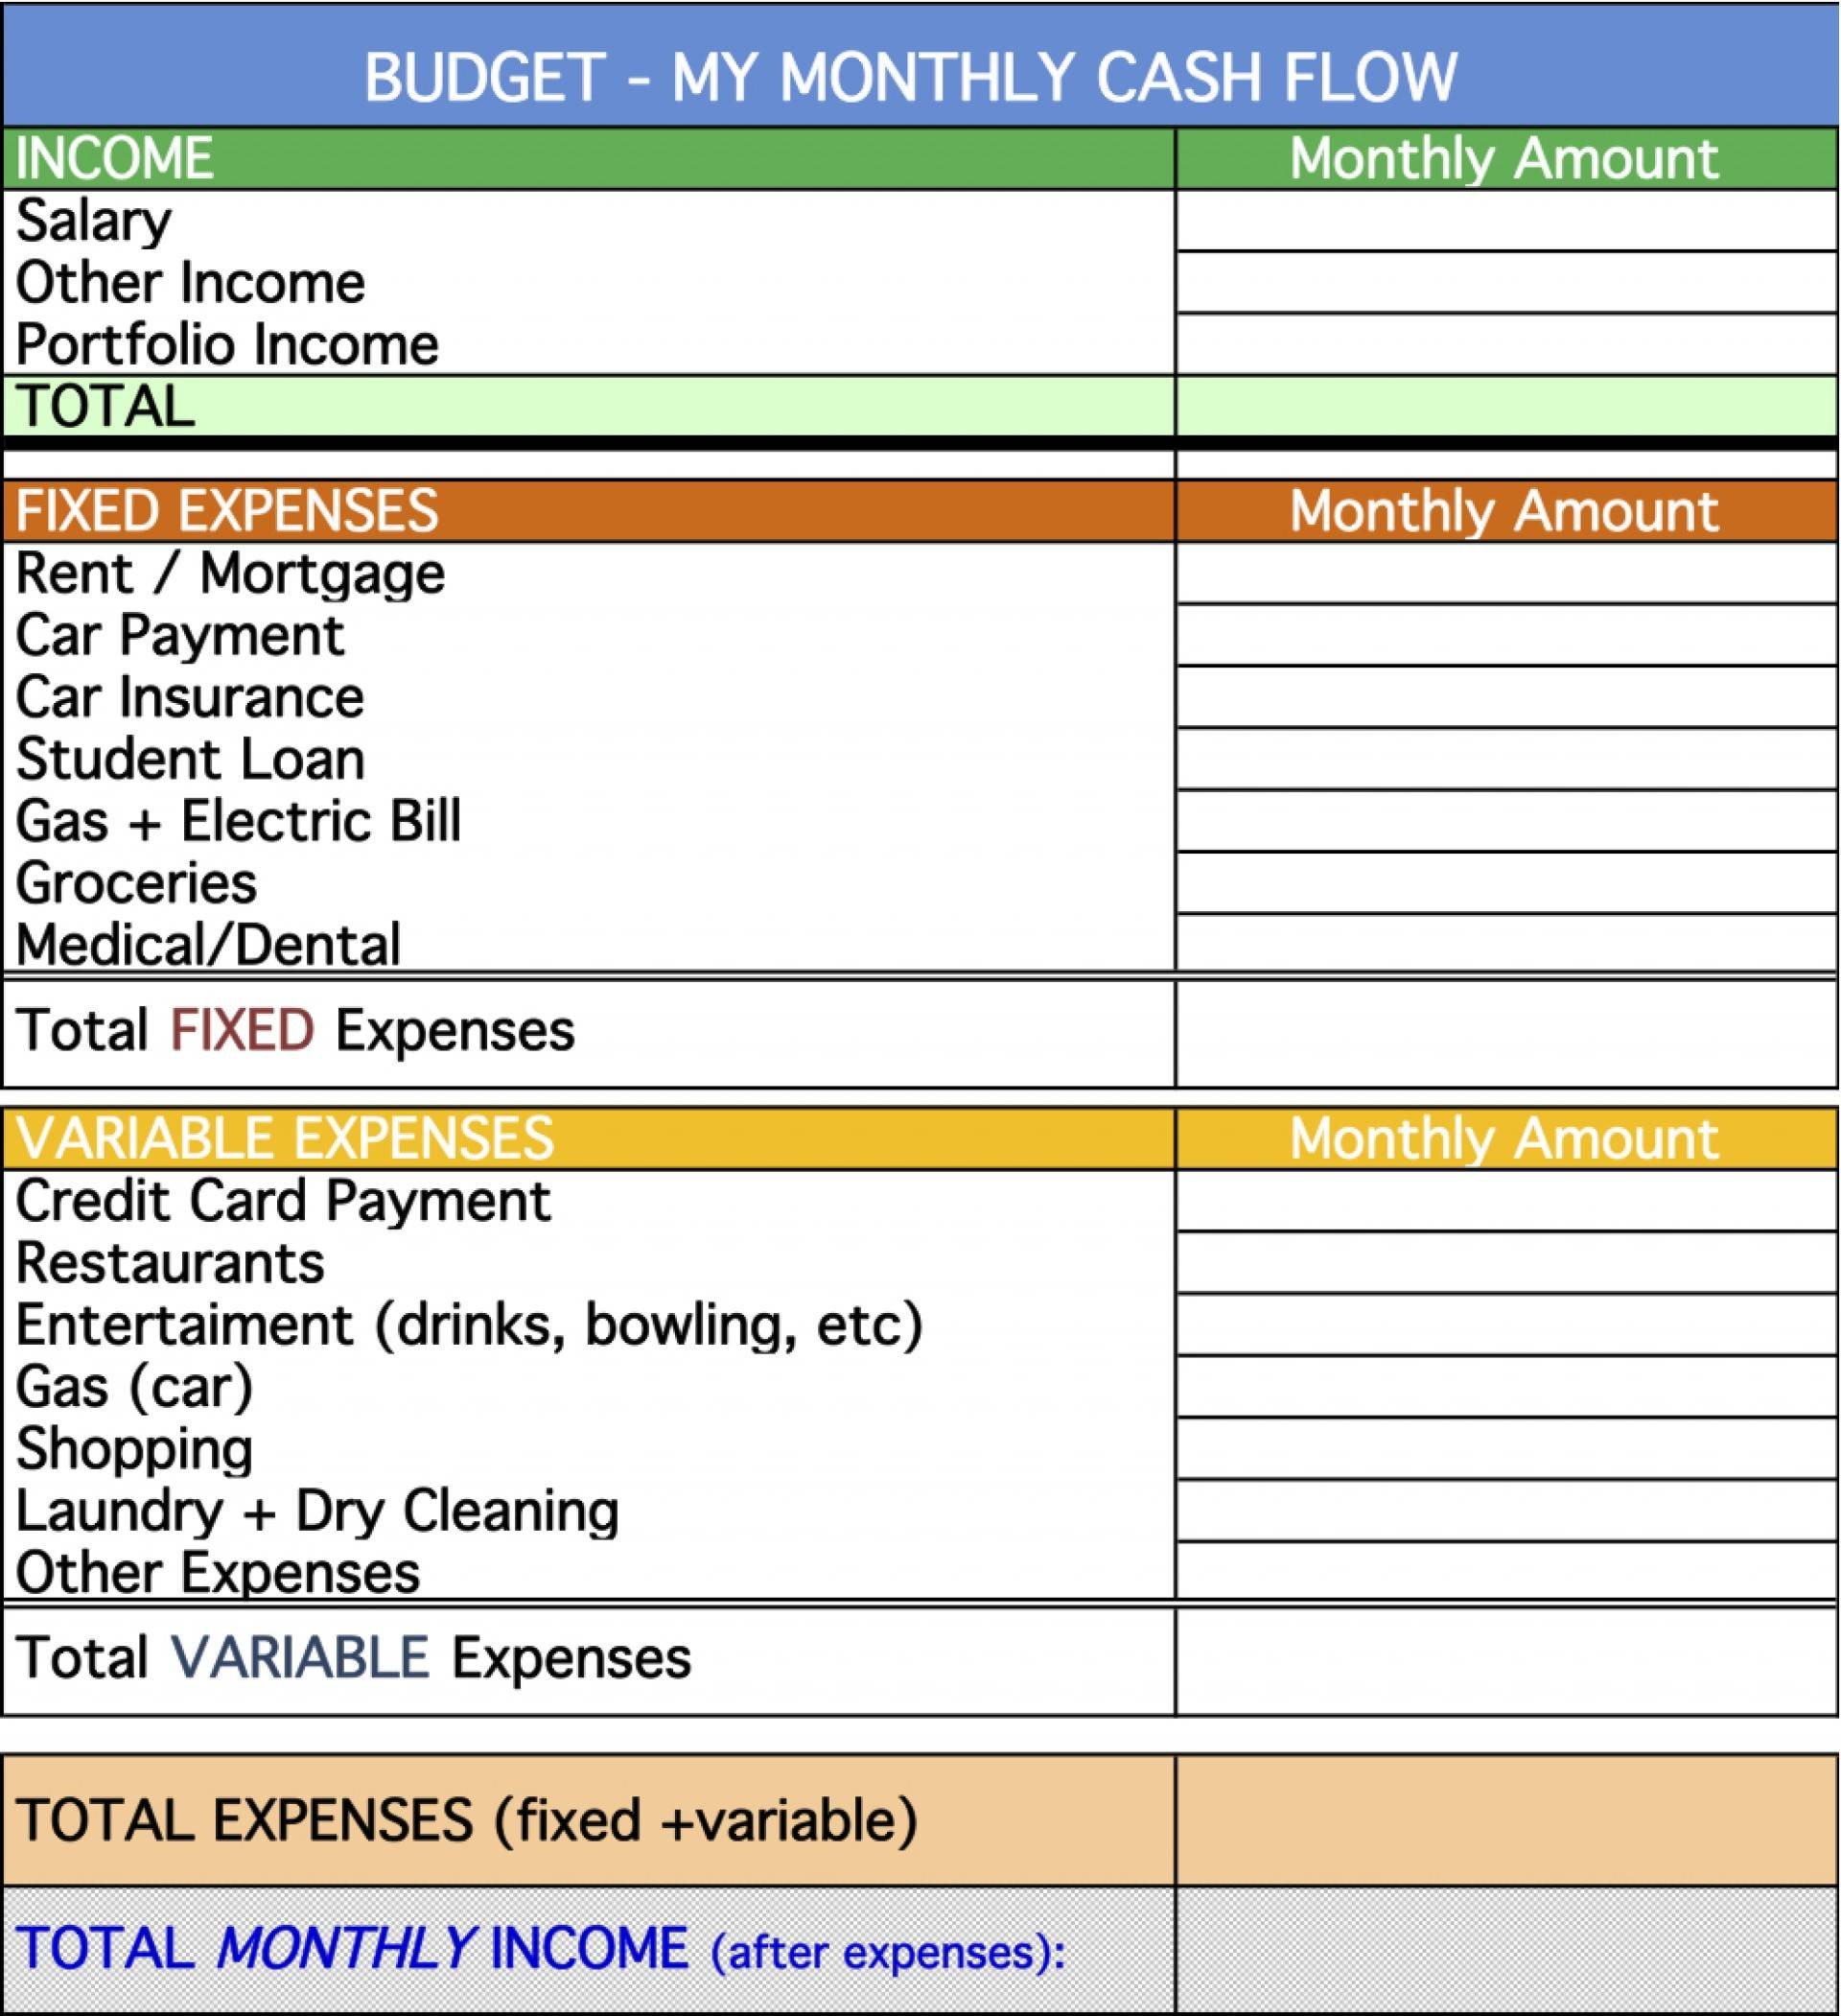 Monthly Cash Flow Statement Template